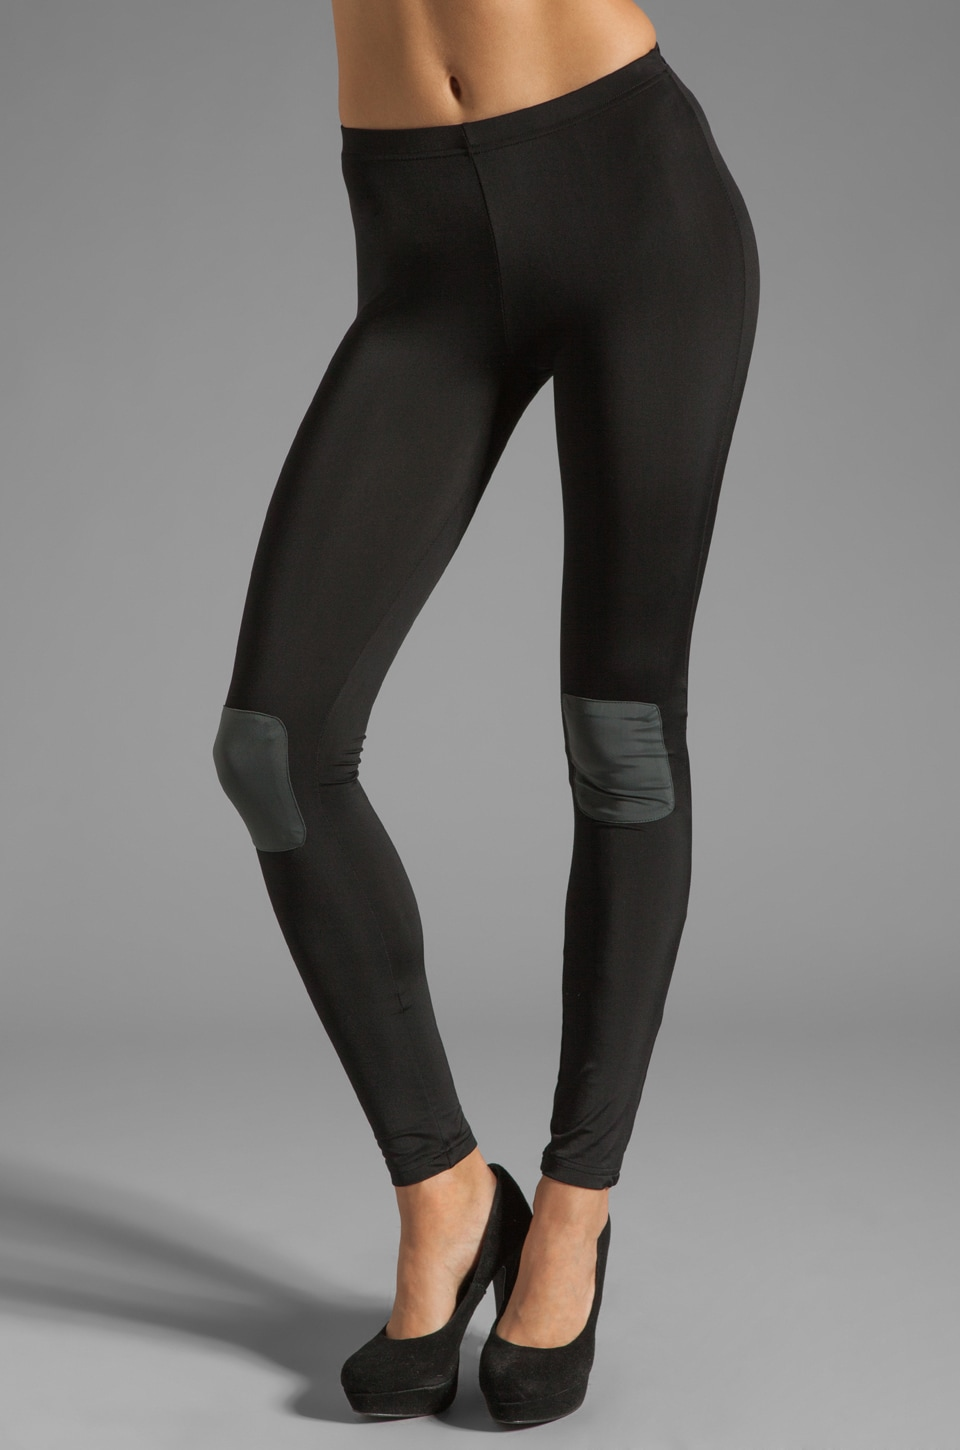 Plush Knee Patch Legging in Black/Charcoal